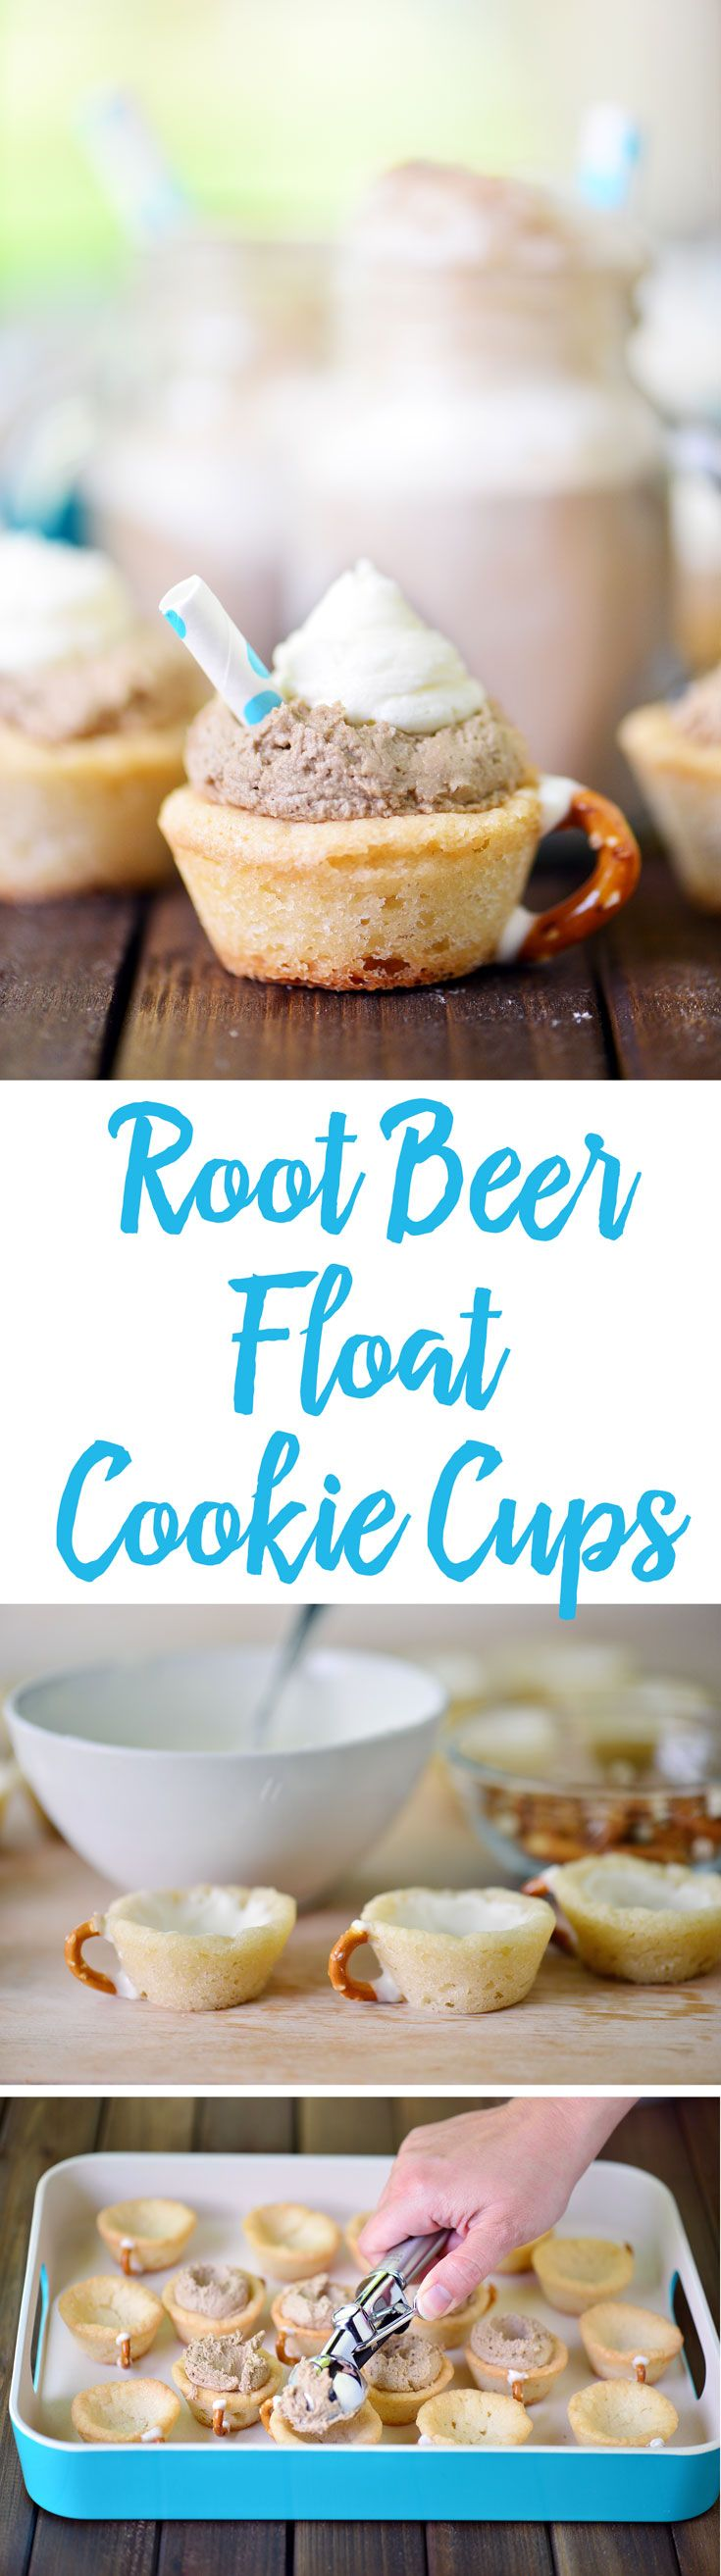 This Root Beer Float Cookie Cups recipe is perfect for a summer dessert! Make with root beer buttercream frosting or vanilla ice cream and root beer!